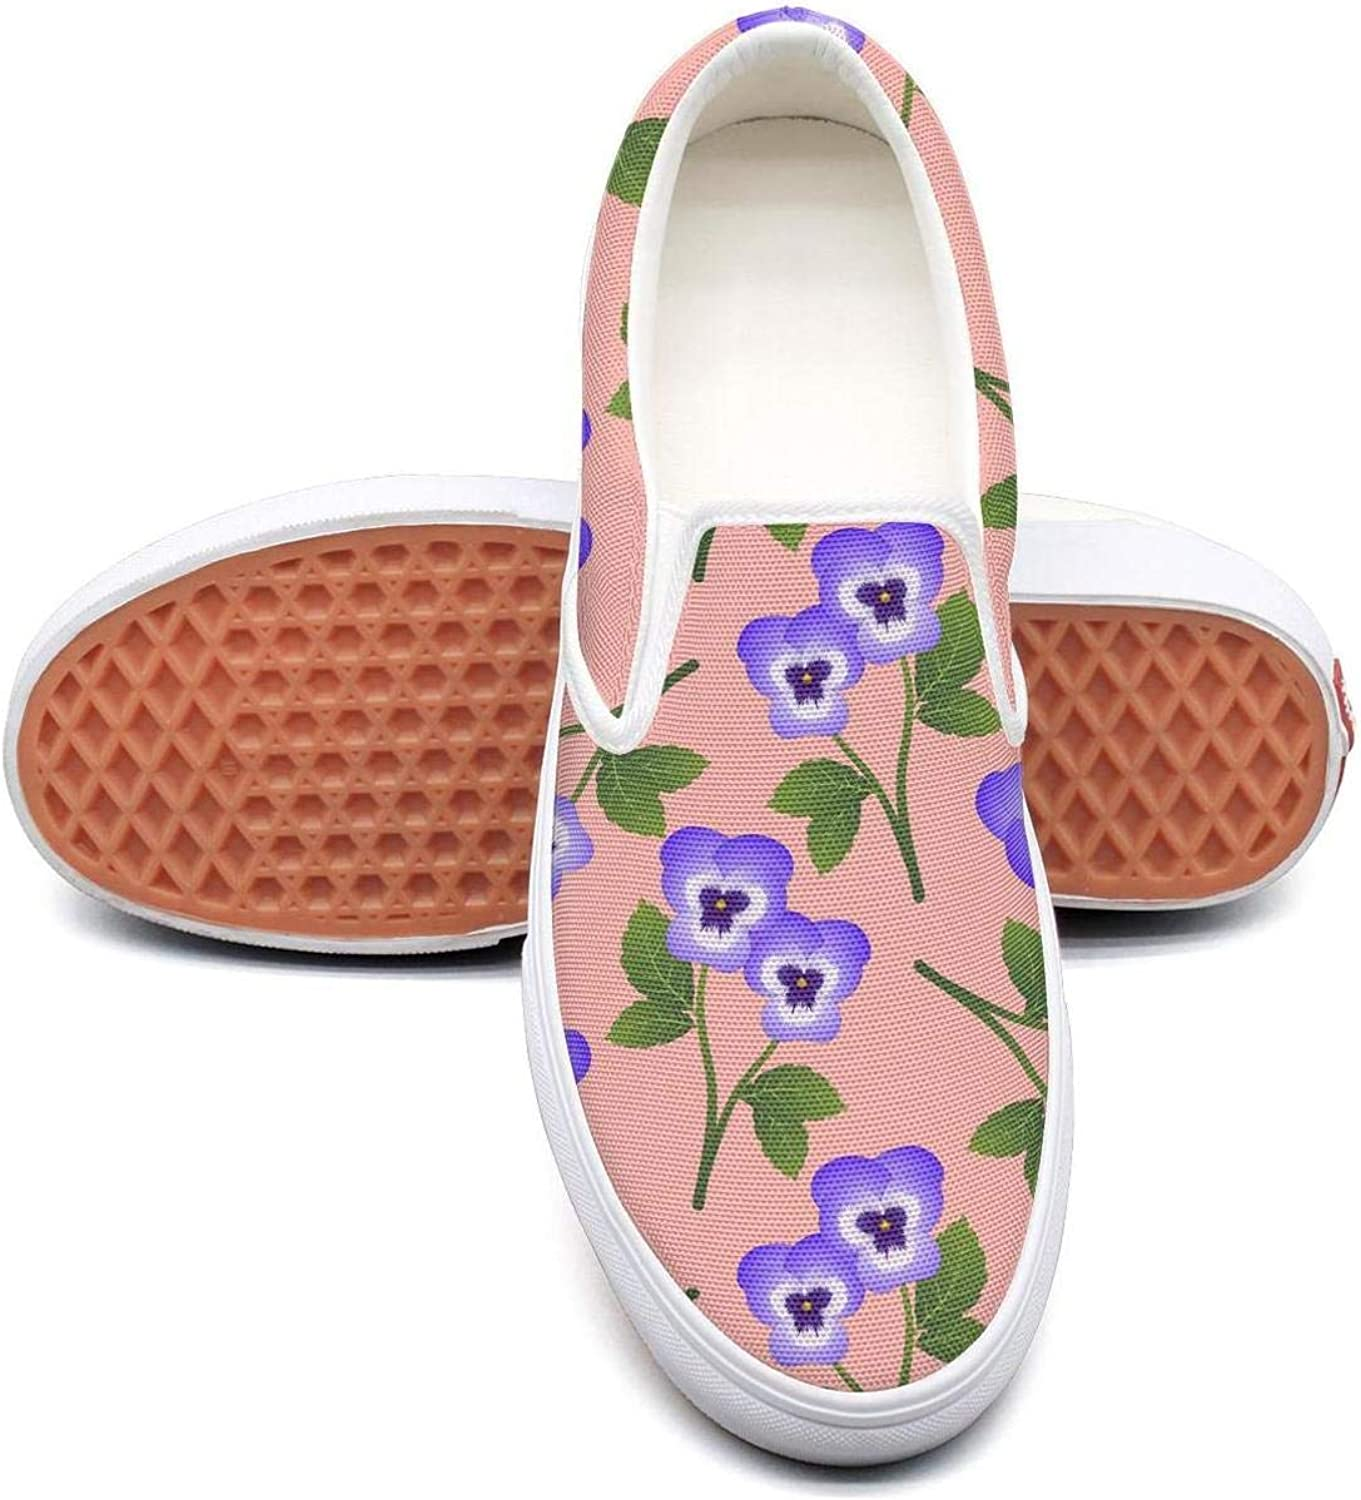 Sernfinjdr Women's purple Pansy Flower on Pink Fashion Casual Canvas Slip on shoes Trendy Cycling Sneaker shoes